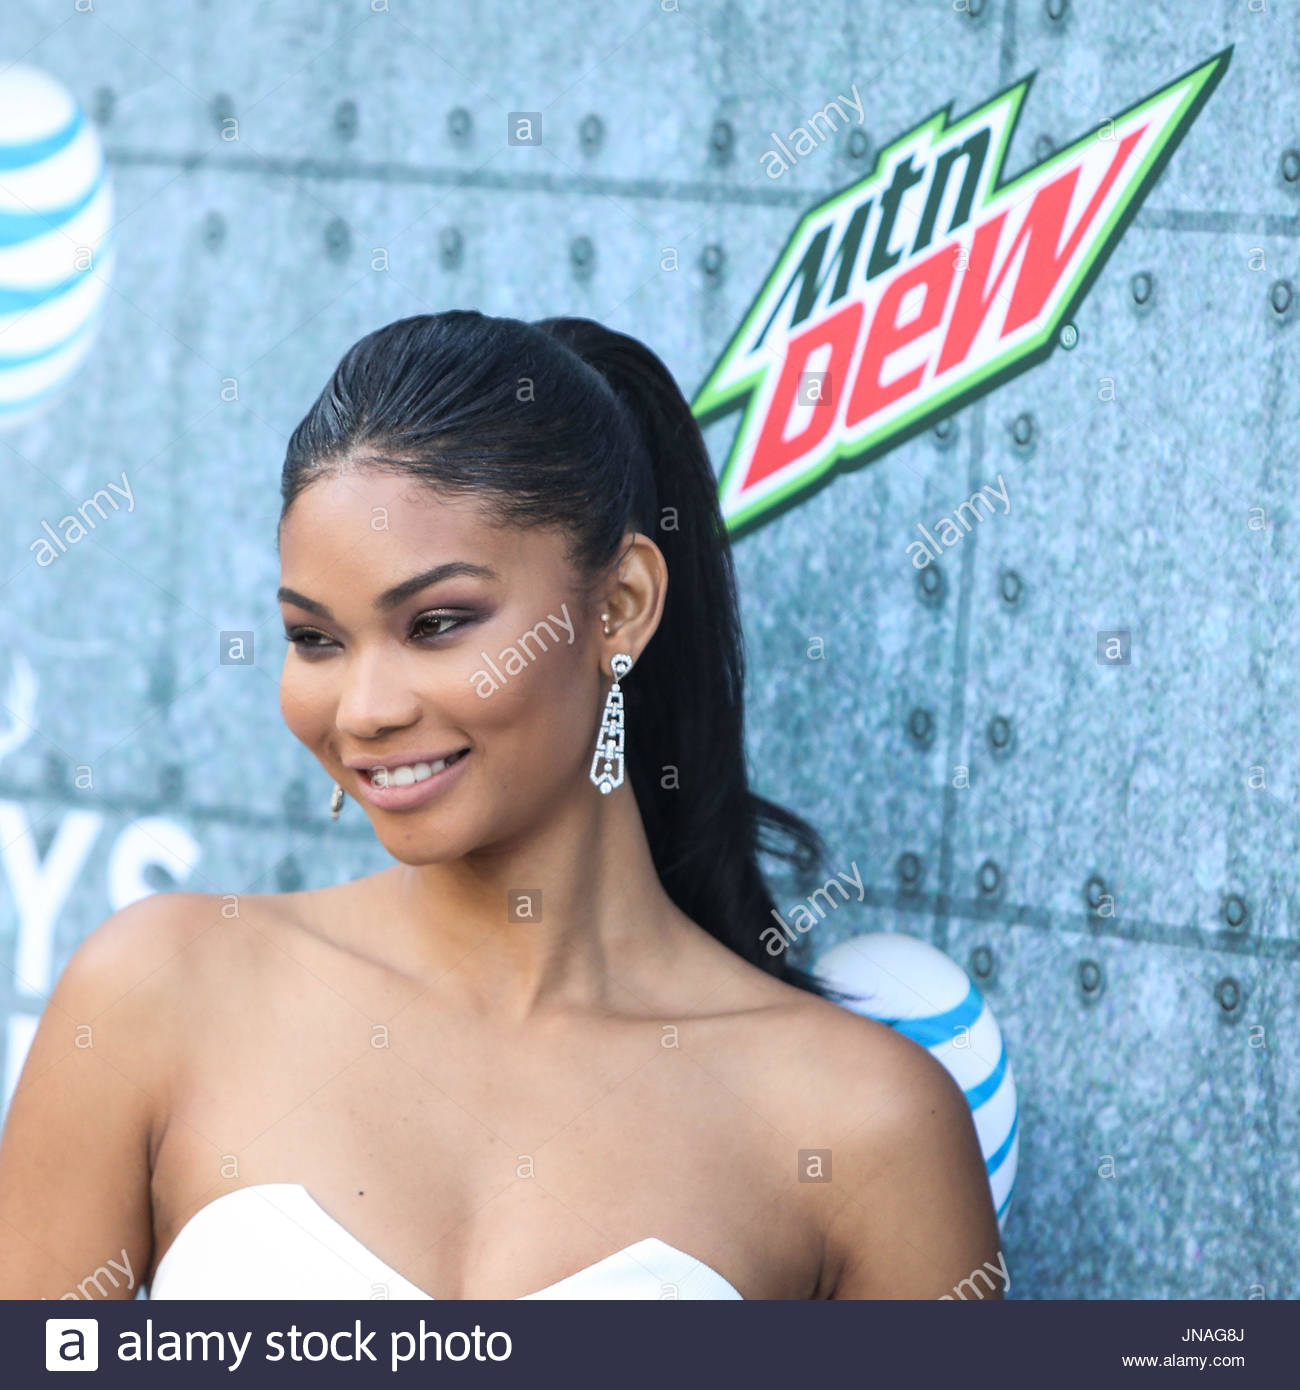 Chanel Iman United States nudes (37 photos), Topless, Fappening, Boobs, swimsuit 2019